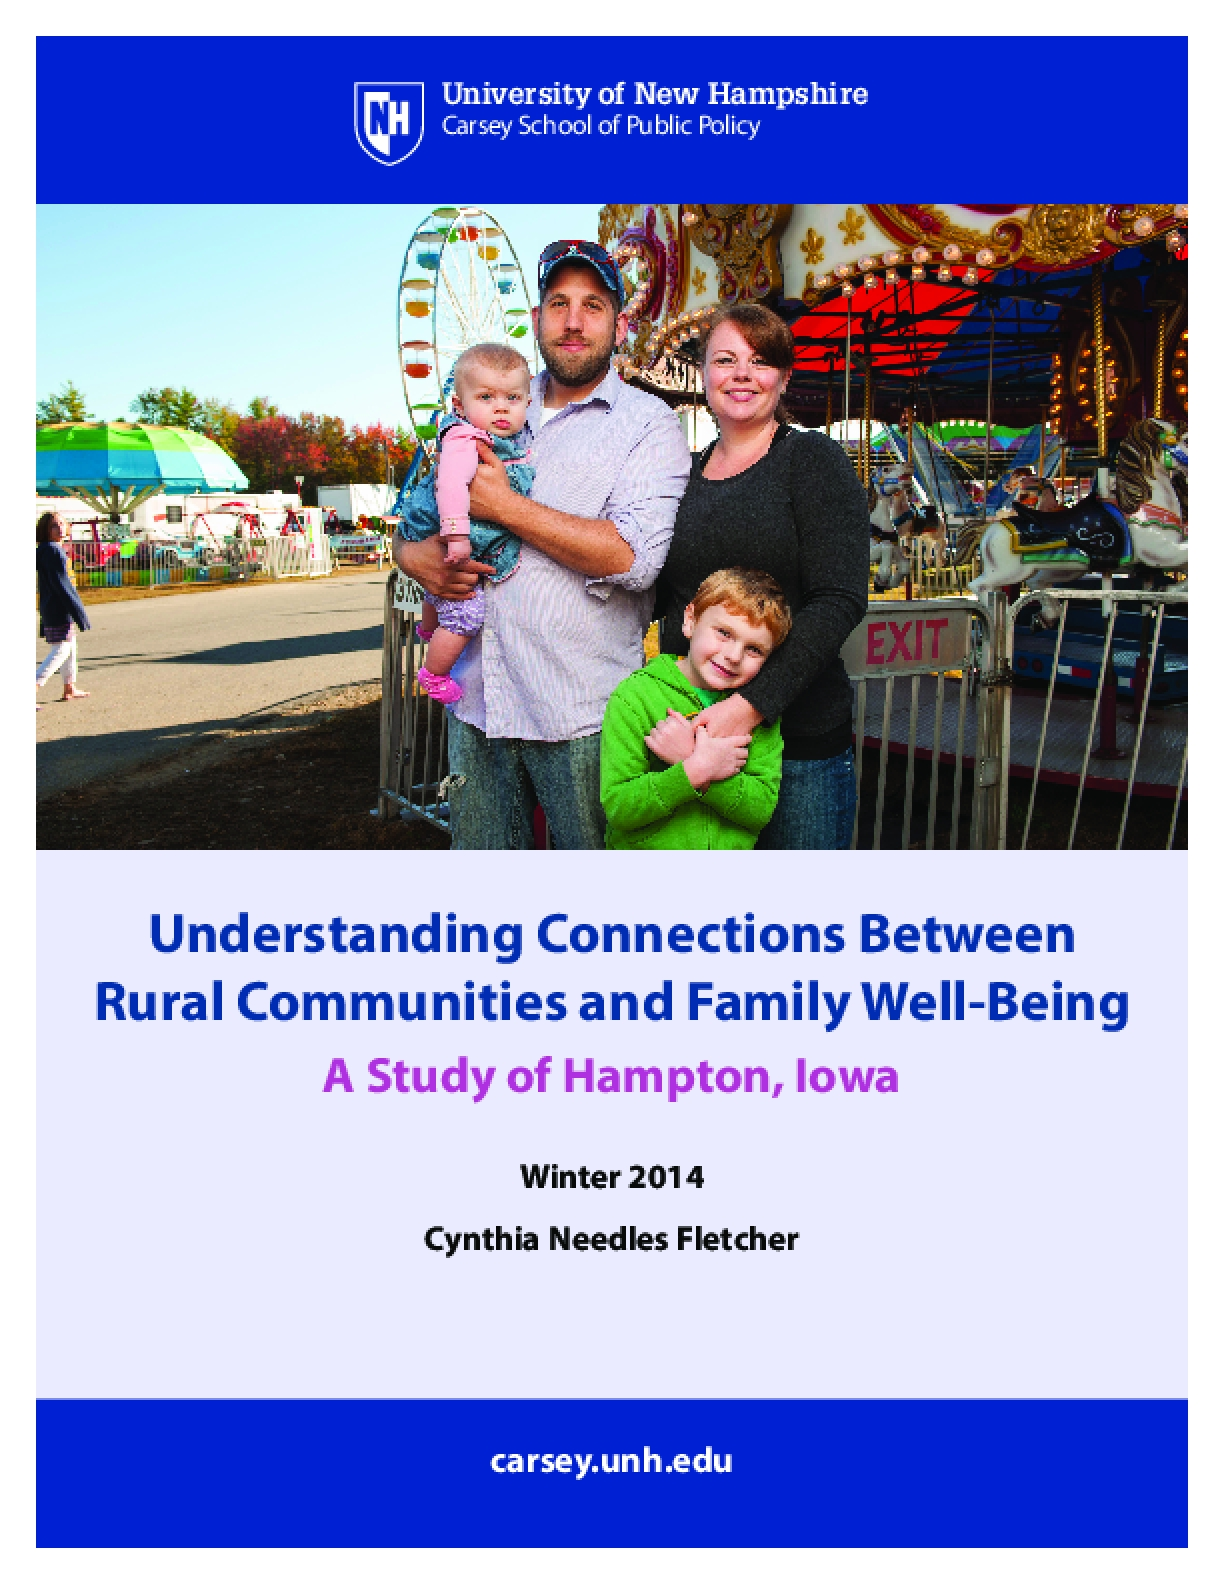 Understanding Connections Between Rural Communities and Family Well-Being